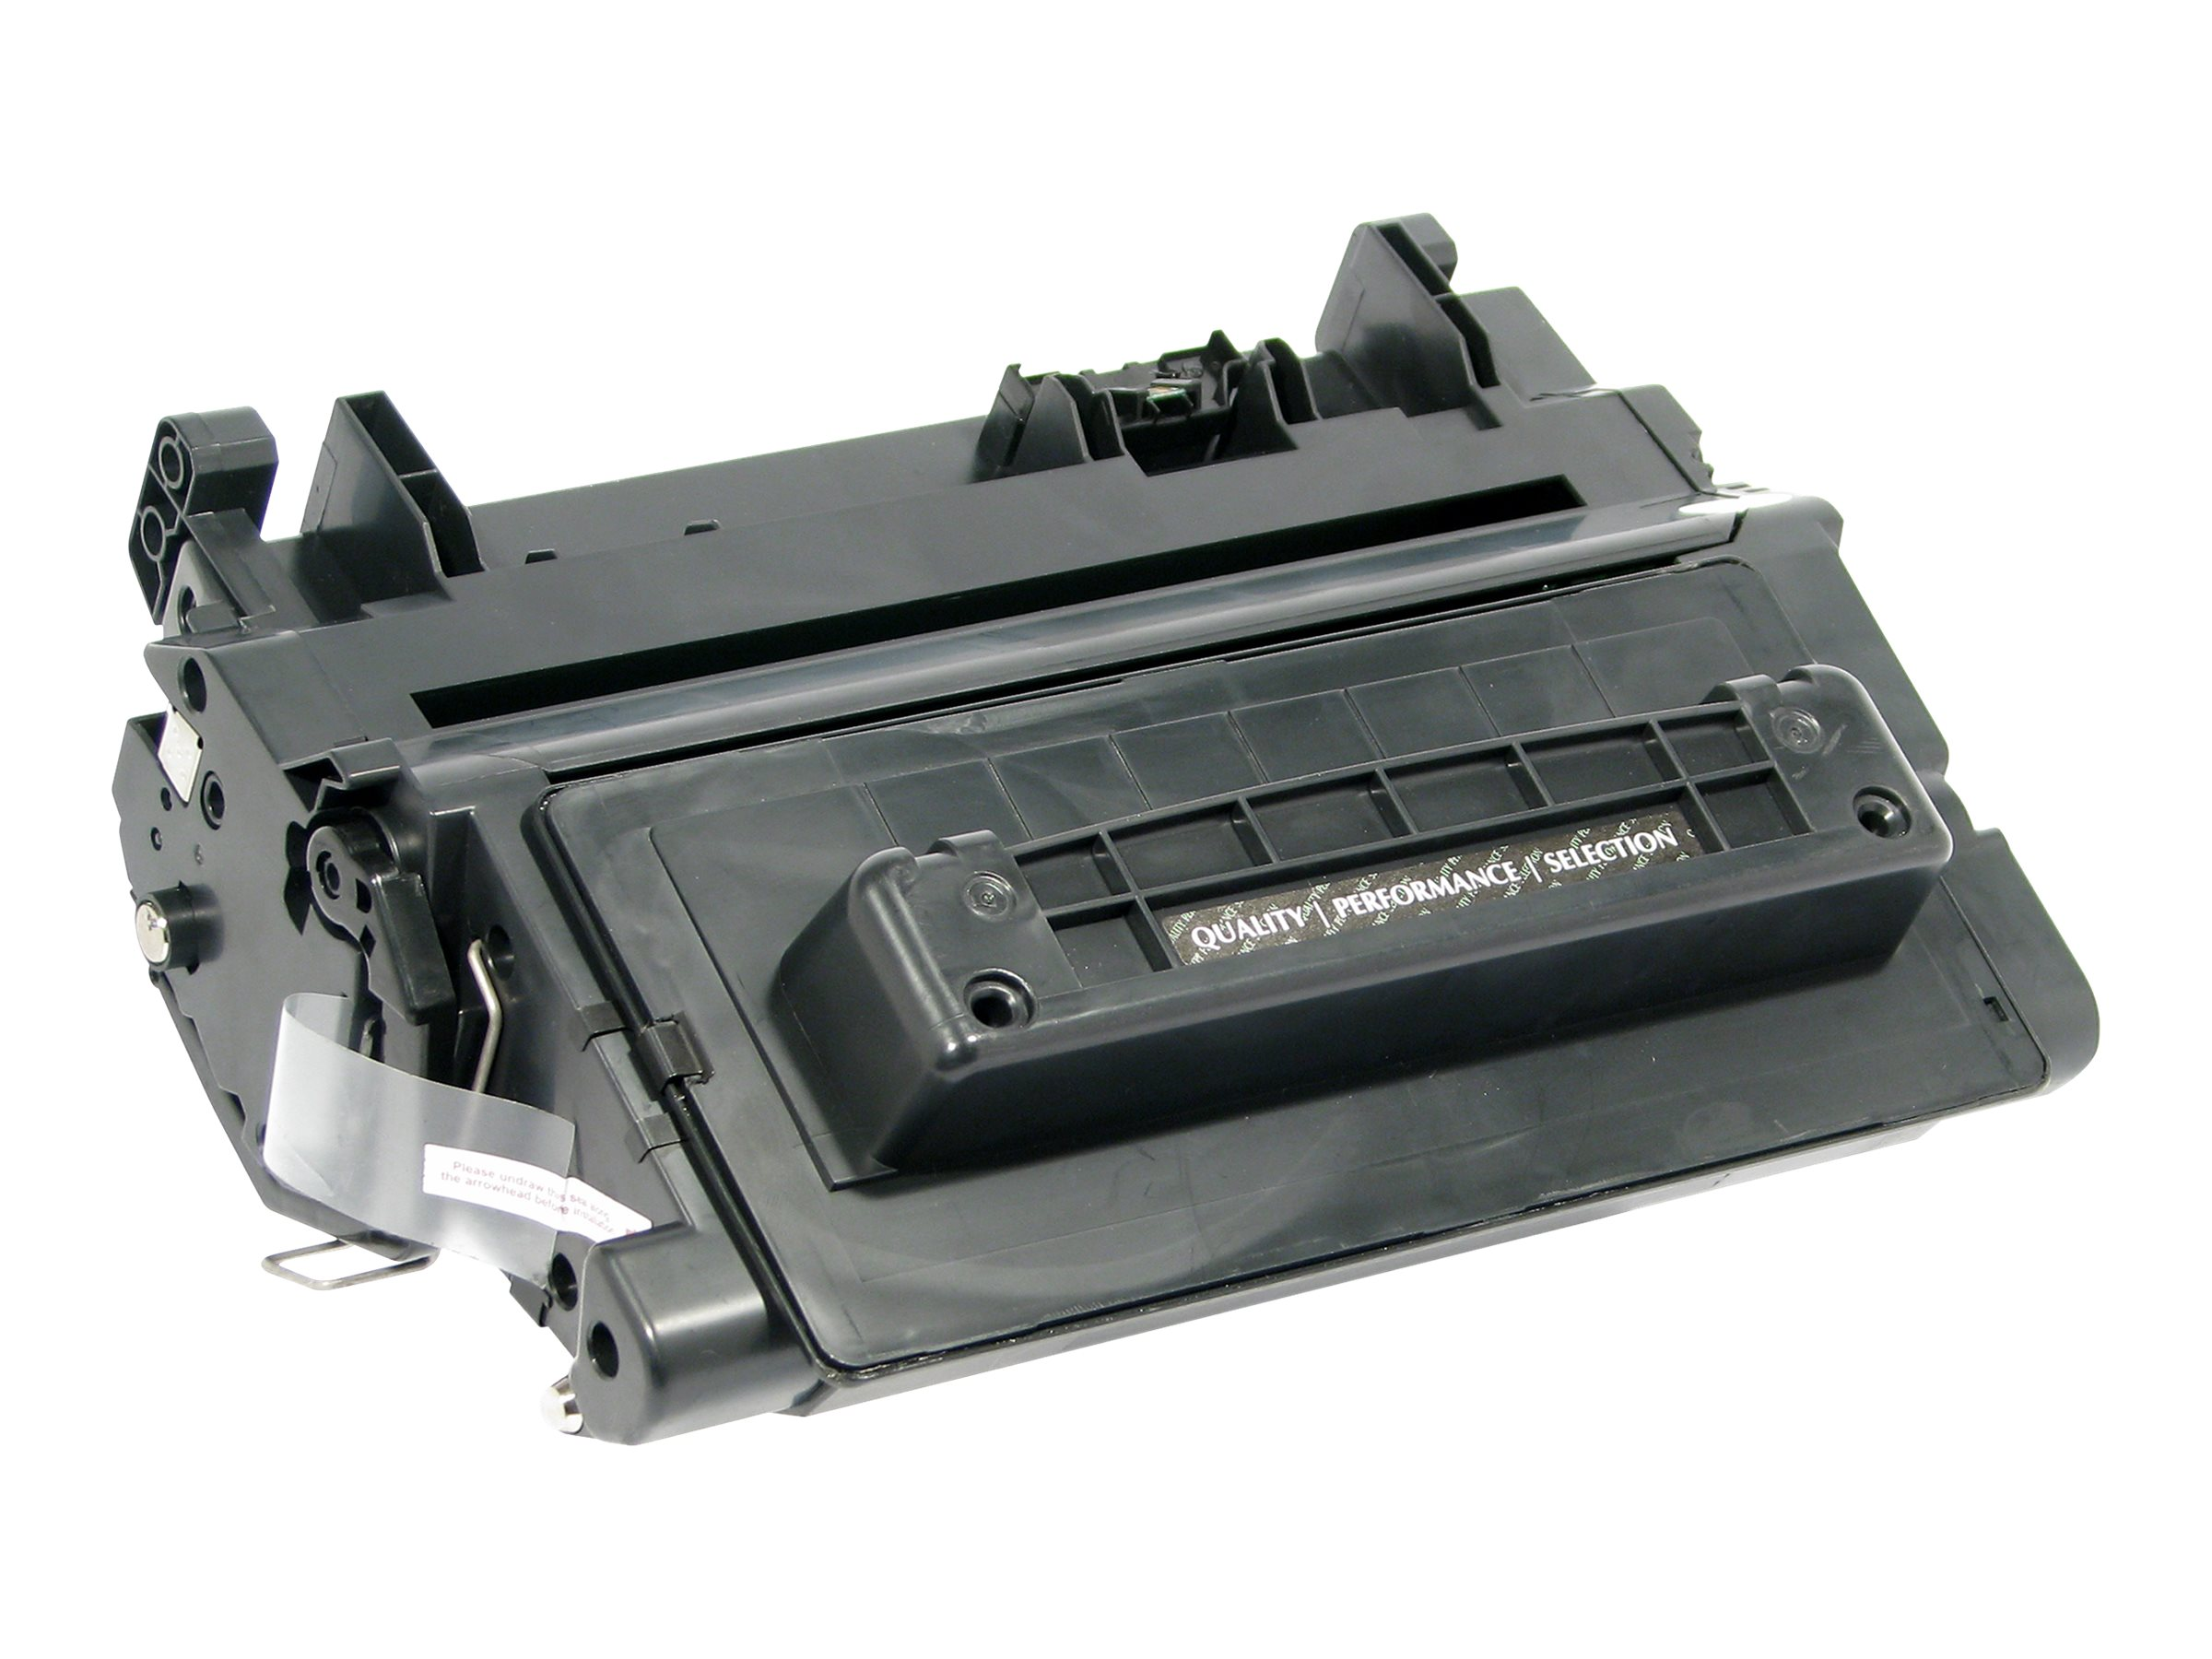 V7 CE390A Black Toner Cartridge for HP LaserJet M4555, V790AP, 15010885, Toner and Imaging Components